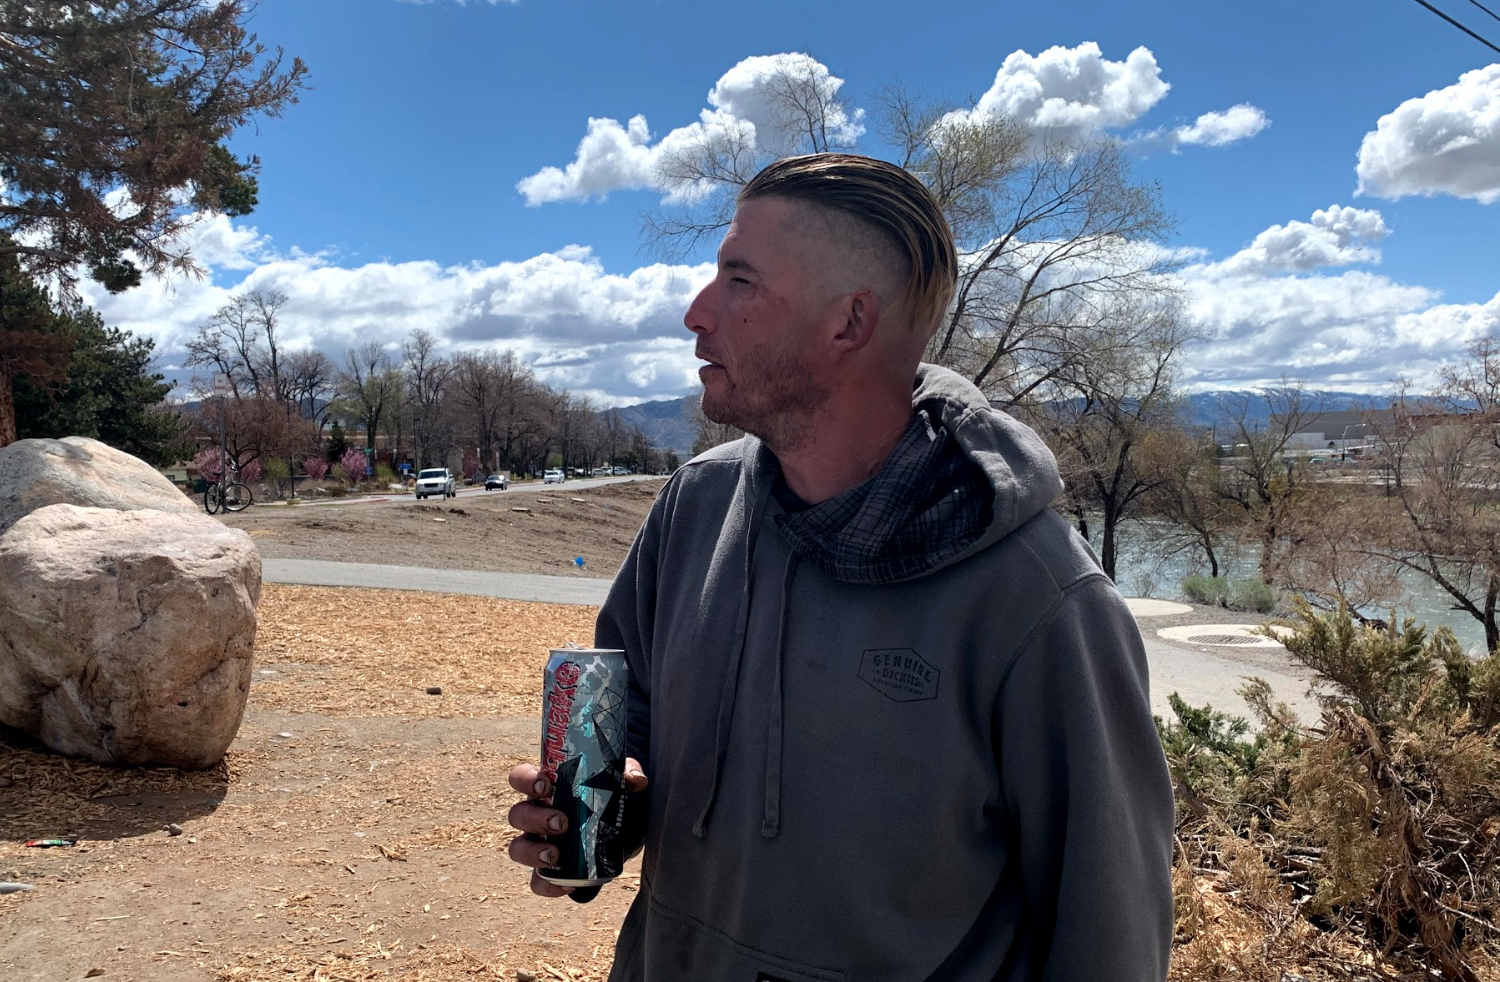 """People come to the park, and offer jobs so i'm getting ready to be picked up right now,"" Josh, 33, said when we met him. ""It's picking up slowly, but it's picking up, you know. It's gonna be busy later but now it's slow and we are just here hanging out. Payment depends on a person. Sometimes I make a hundred, maybe under 100... it depends on the person and the job itself."""